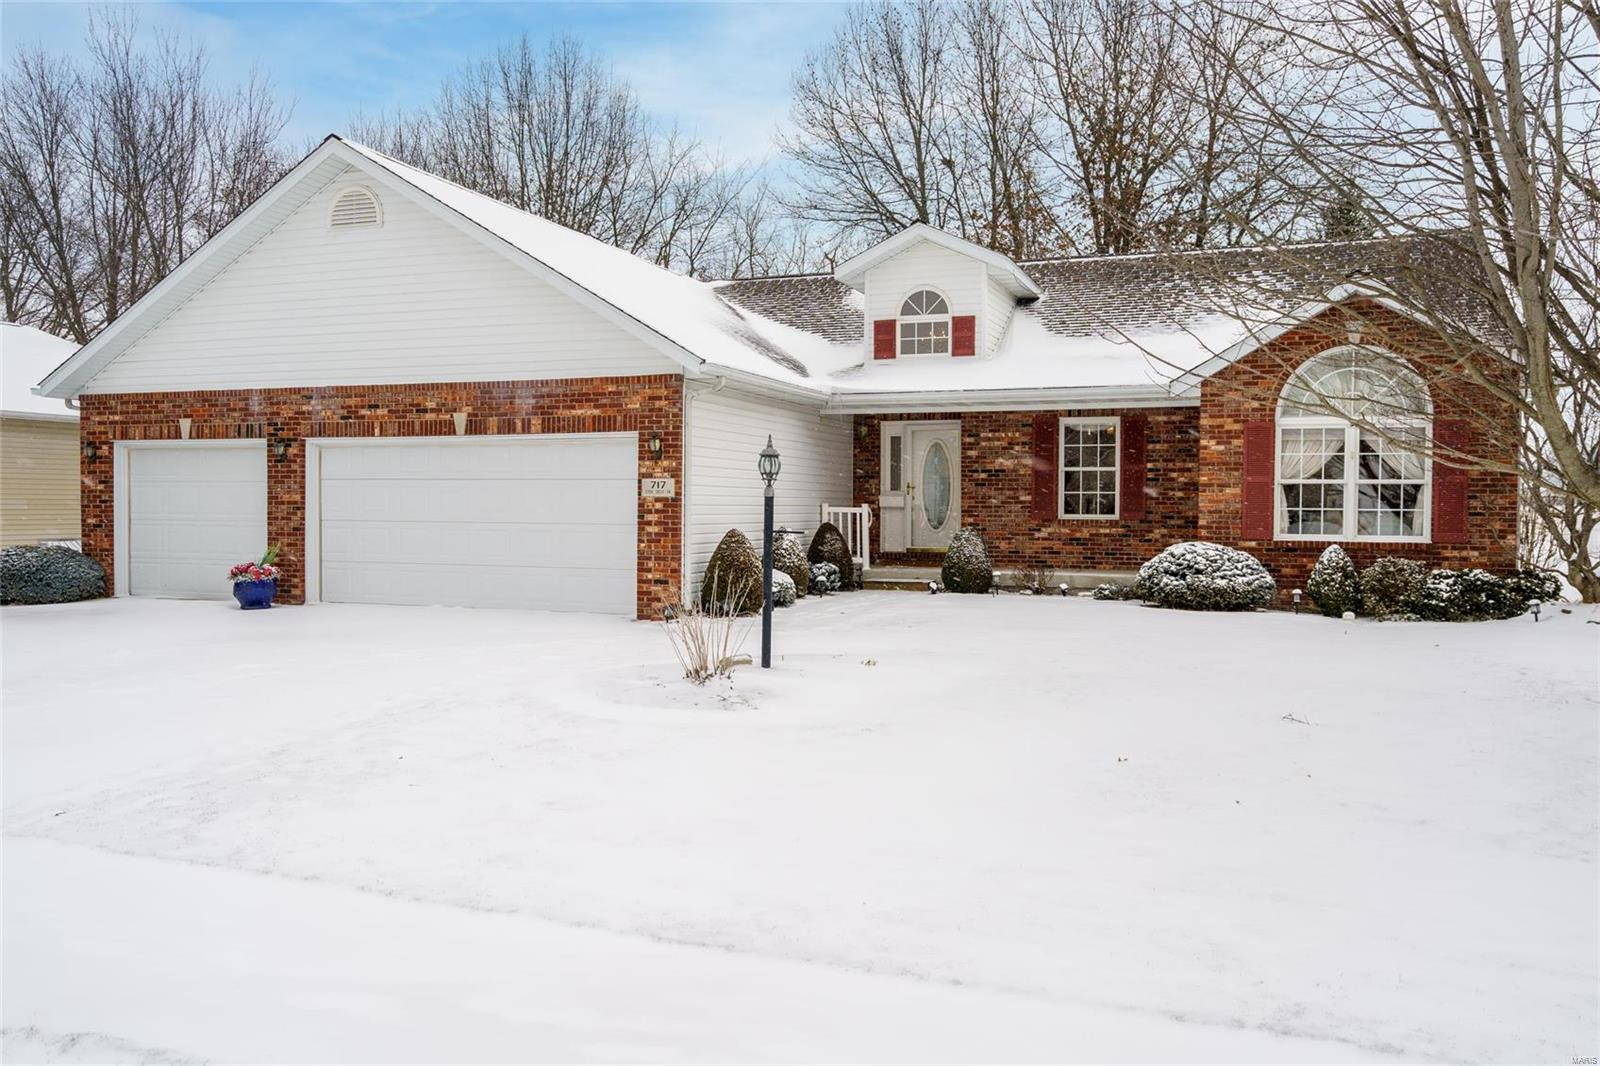 717 Stonecreek Property Photo - Staunton, IL real estate listing